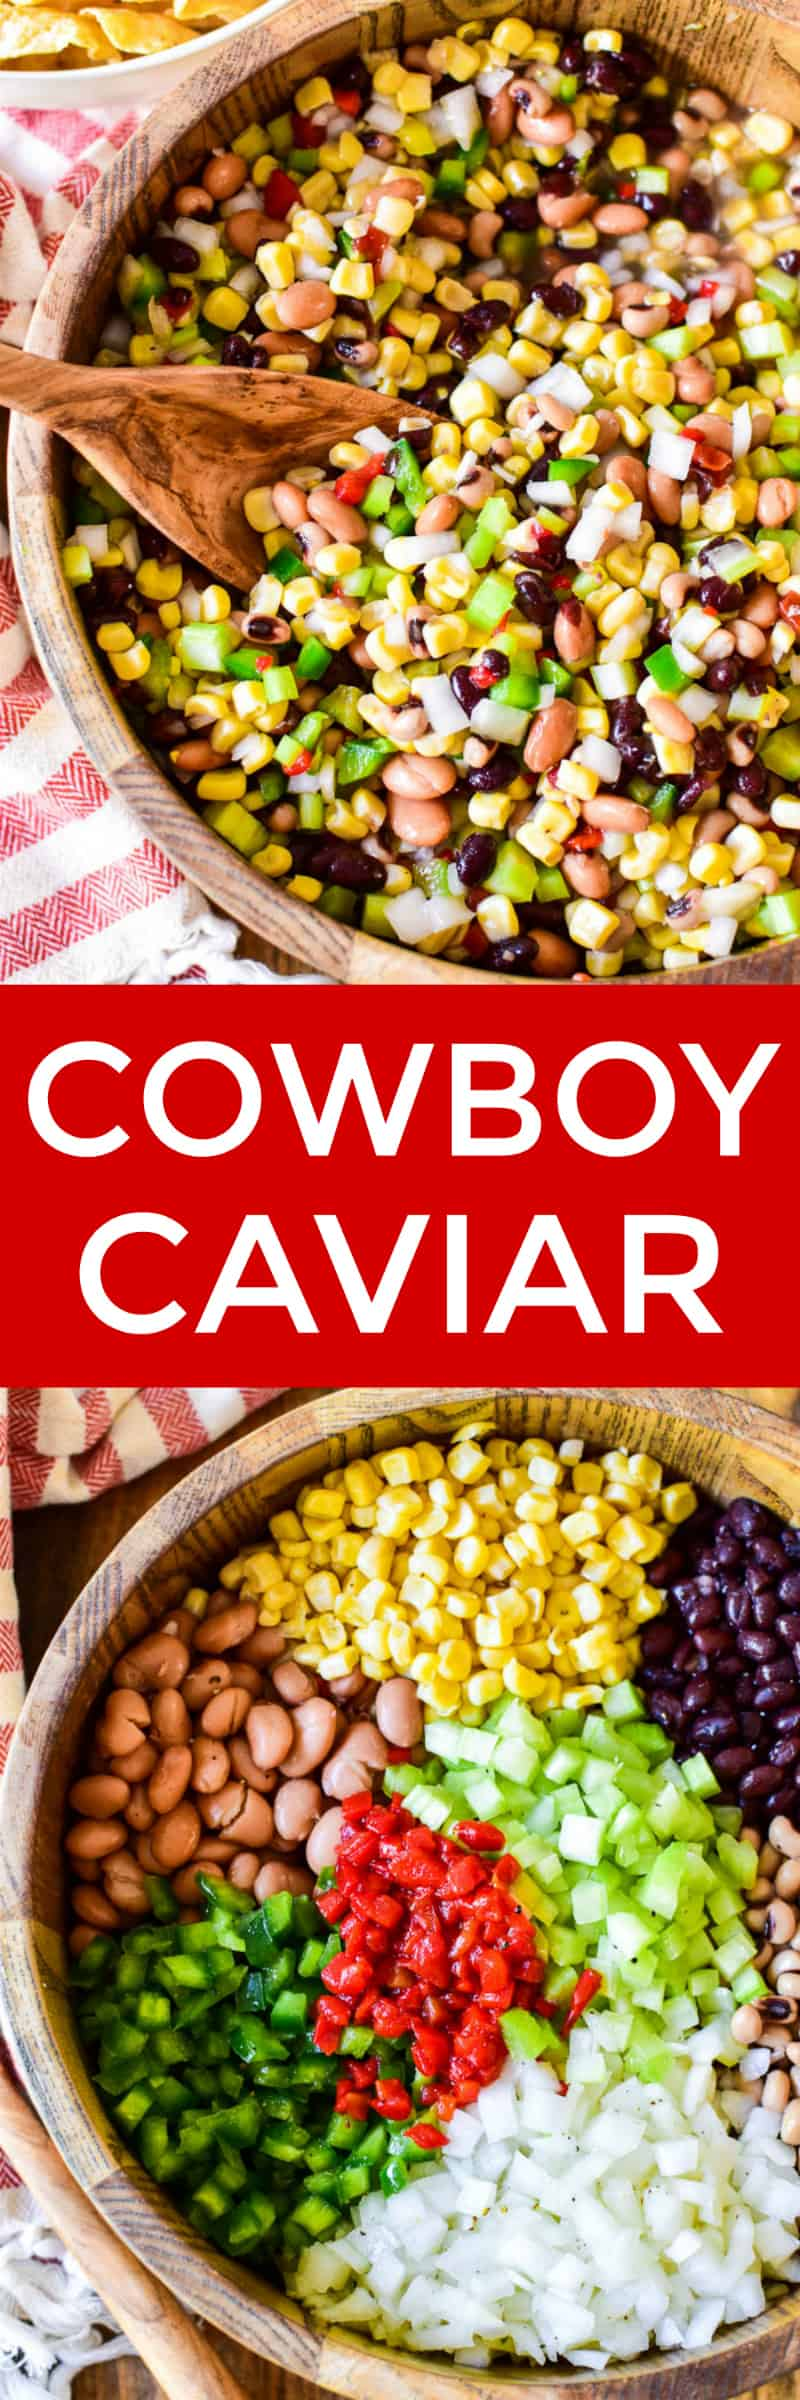 Collage image of Cowboy Caviar